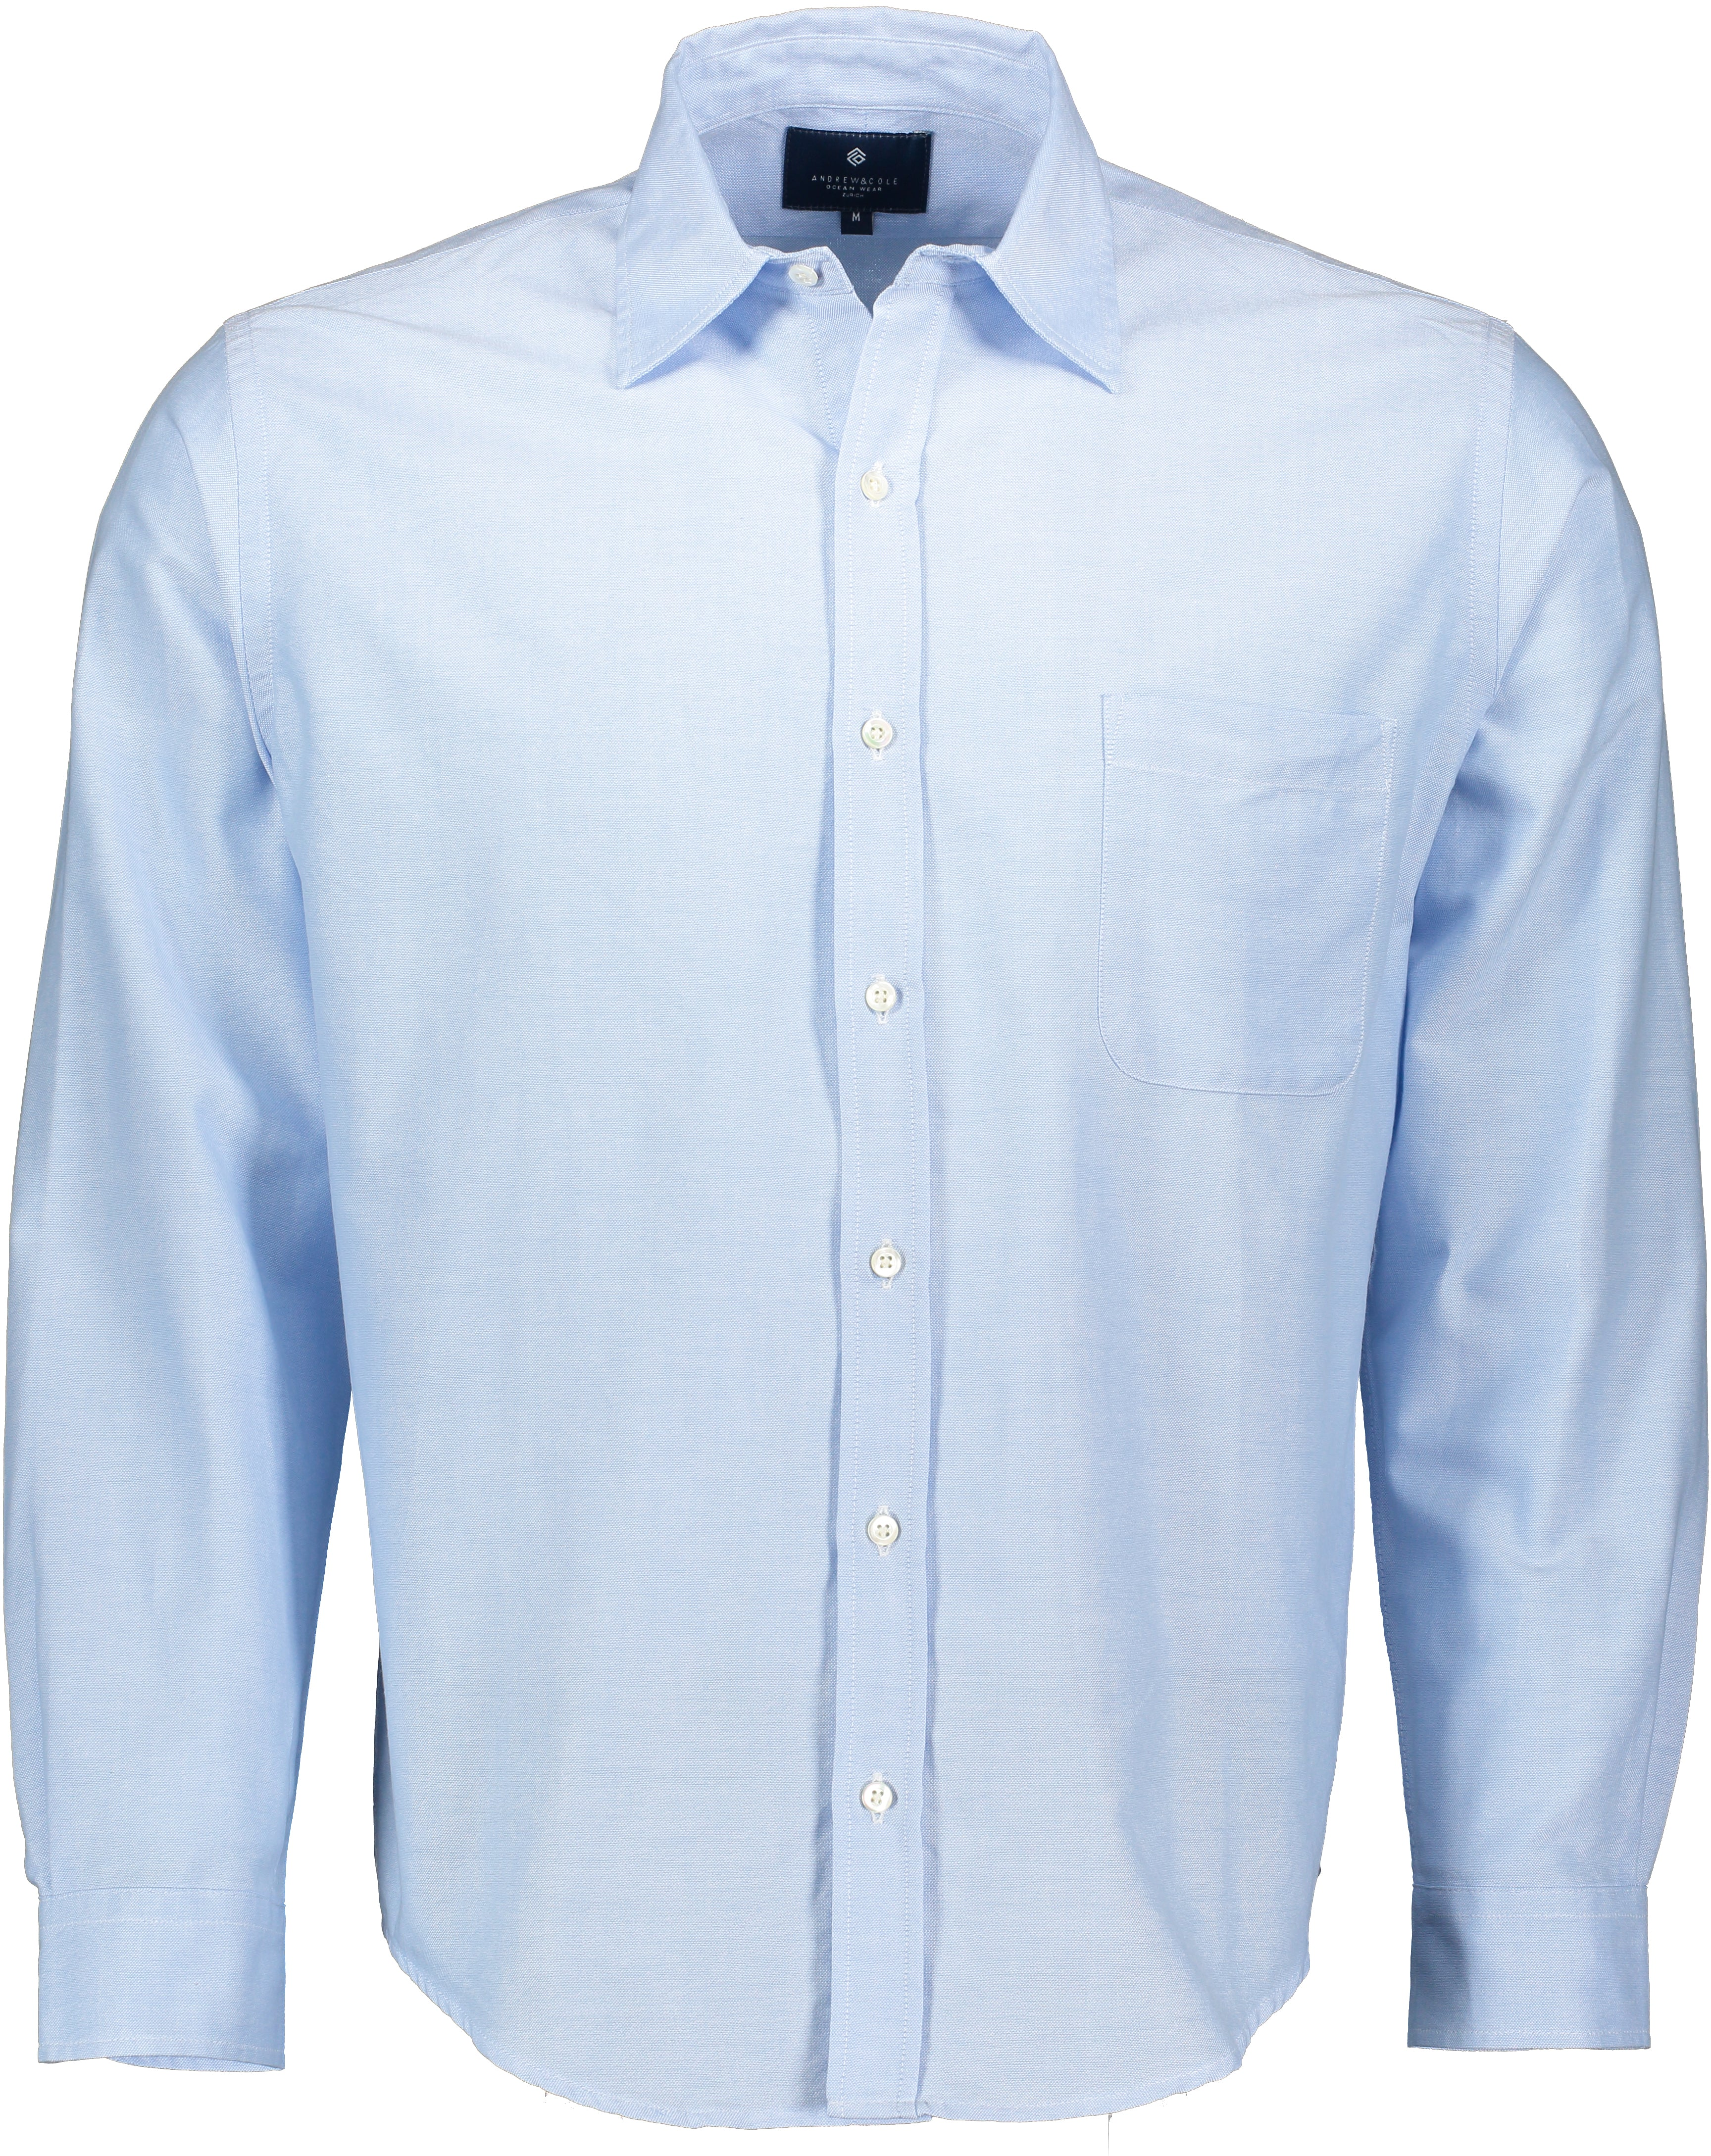 Beach Shirt Light Blue